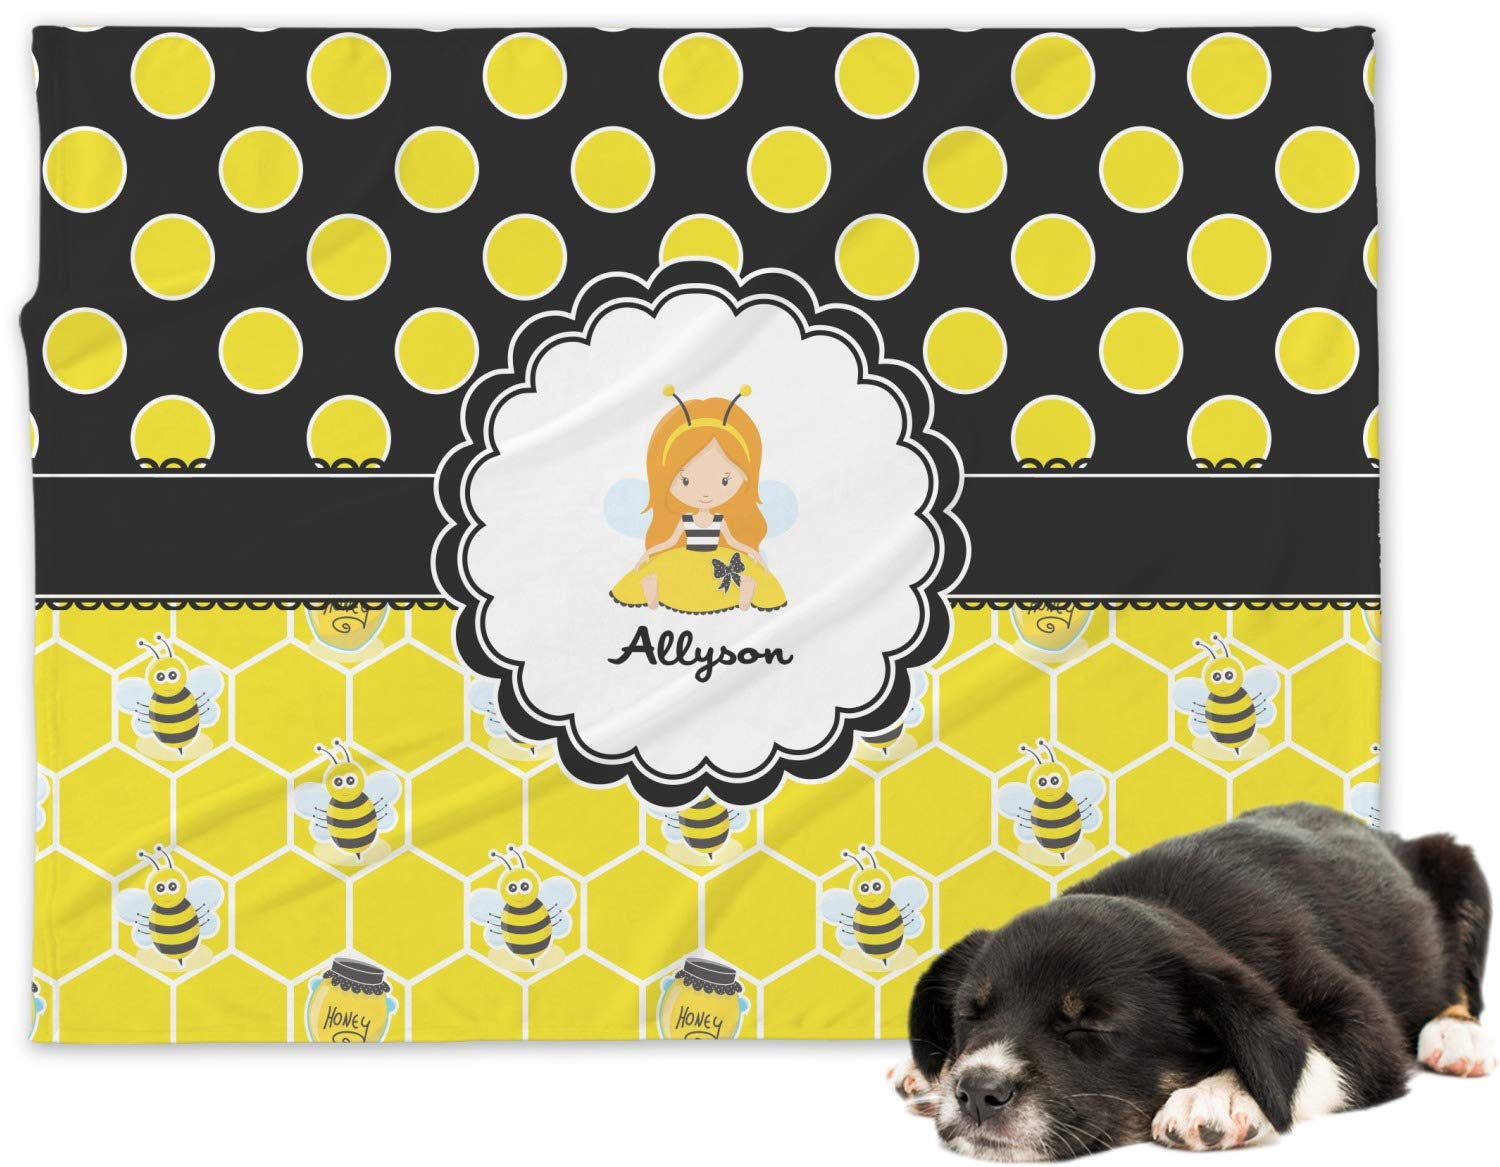 RNK Shops Honeycomb, Bees & Polka Dots Minky Dog Blanket - Regular (Personalized)